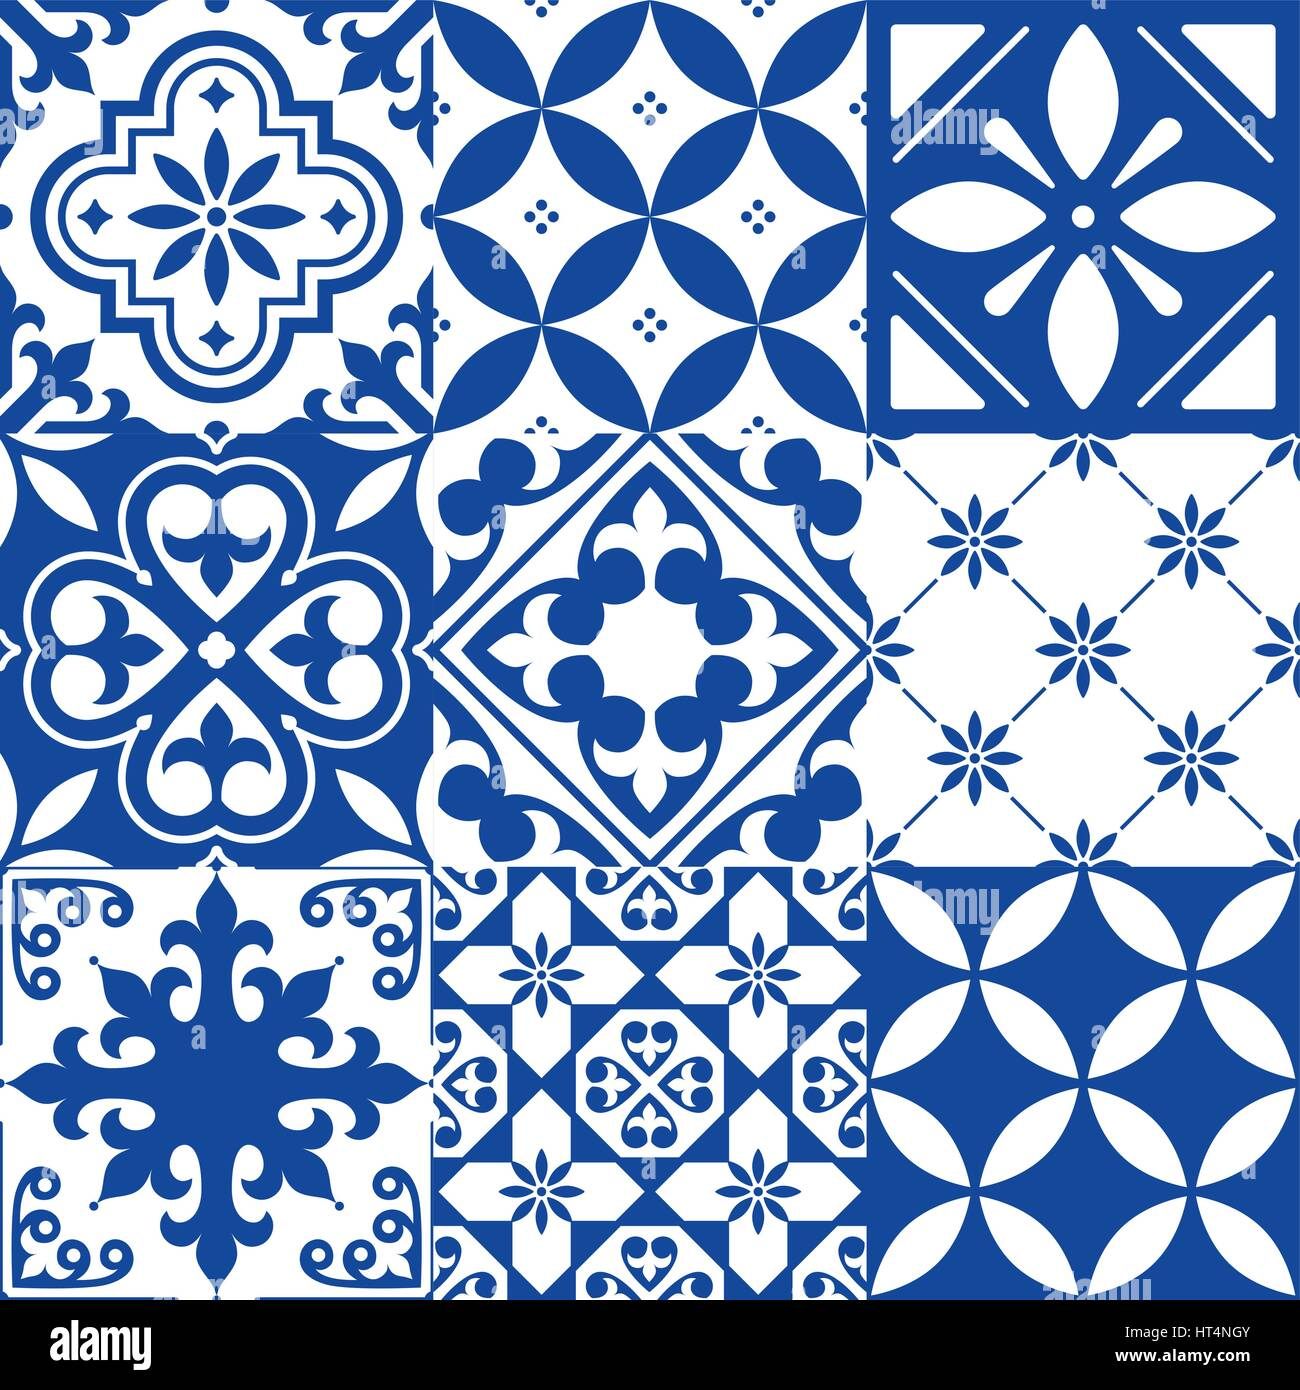 Spanish Tiles Moroccan Tiles Design Seamless Navy Blue